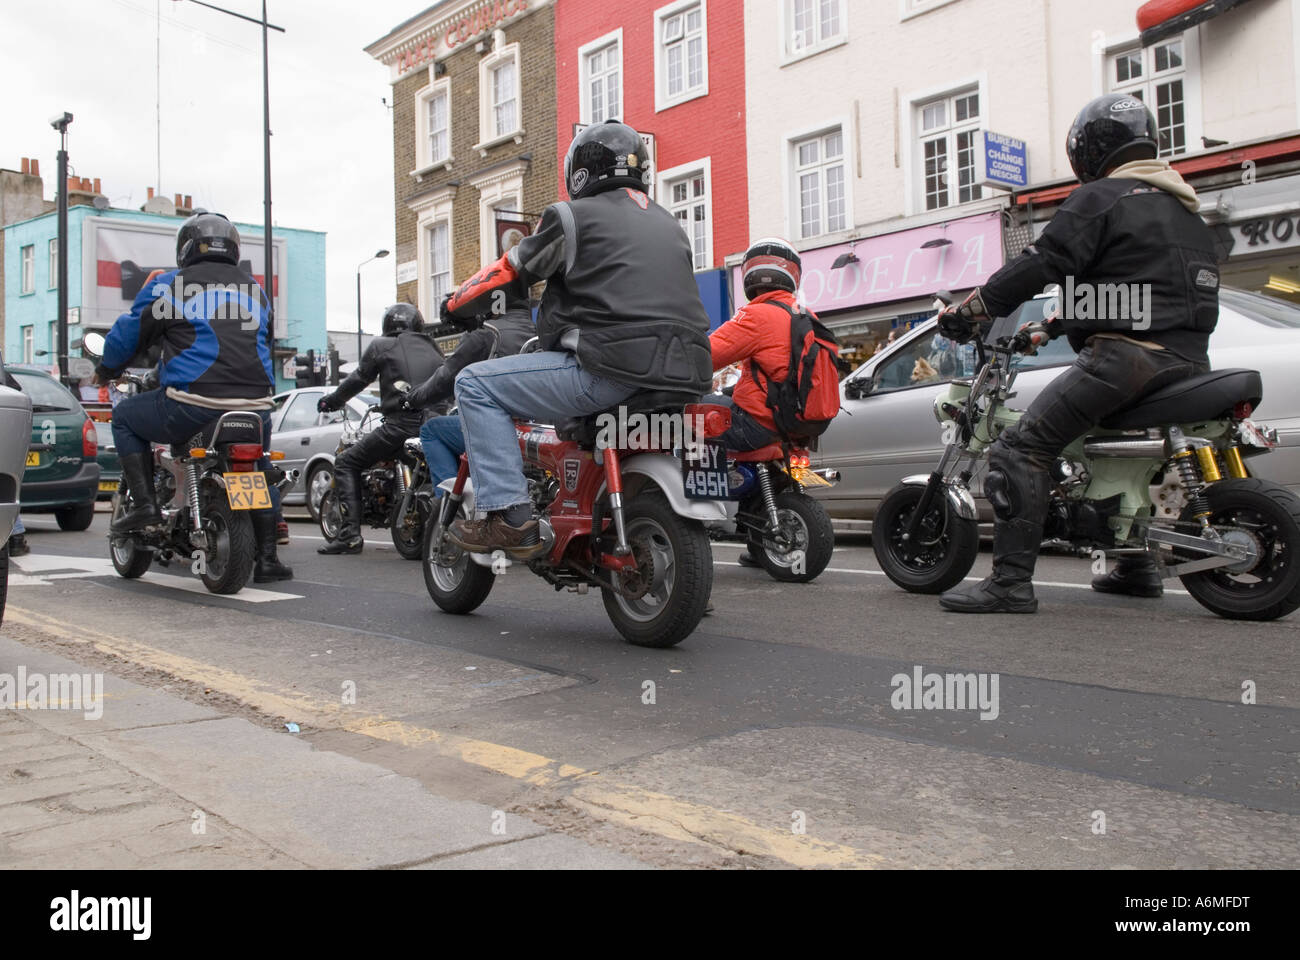 Mini Bike Gang   Stock Image